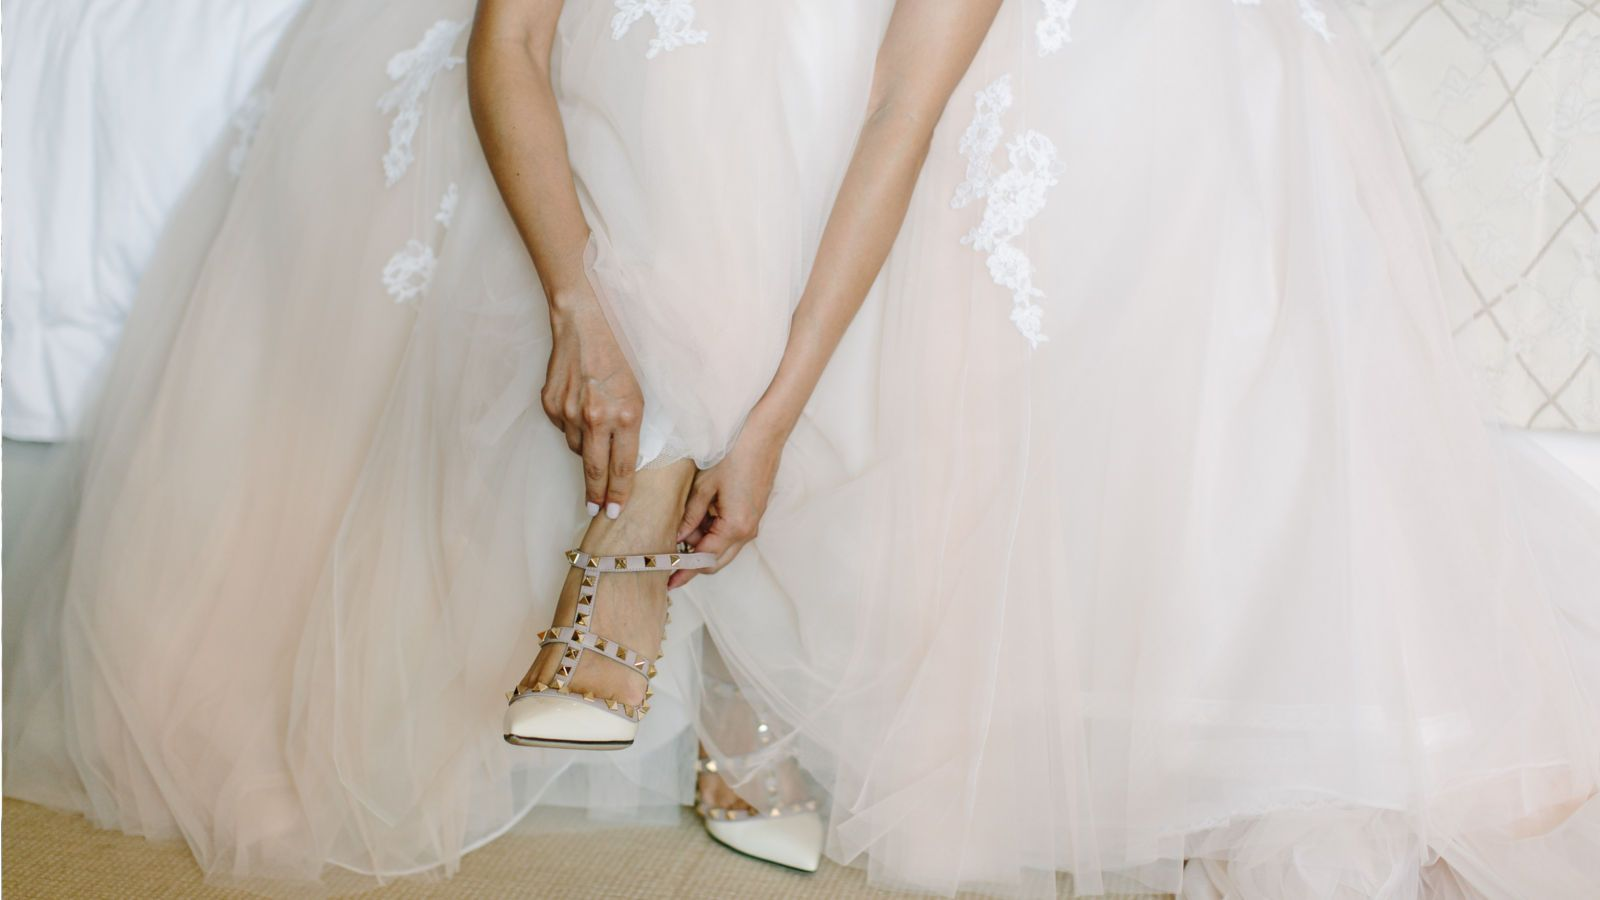 Wonderful bride dress and shoes at The St. Regis Mardavall Mallorca Resort